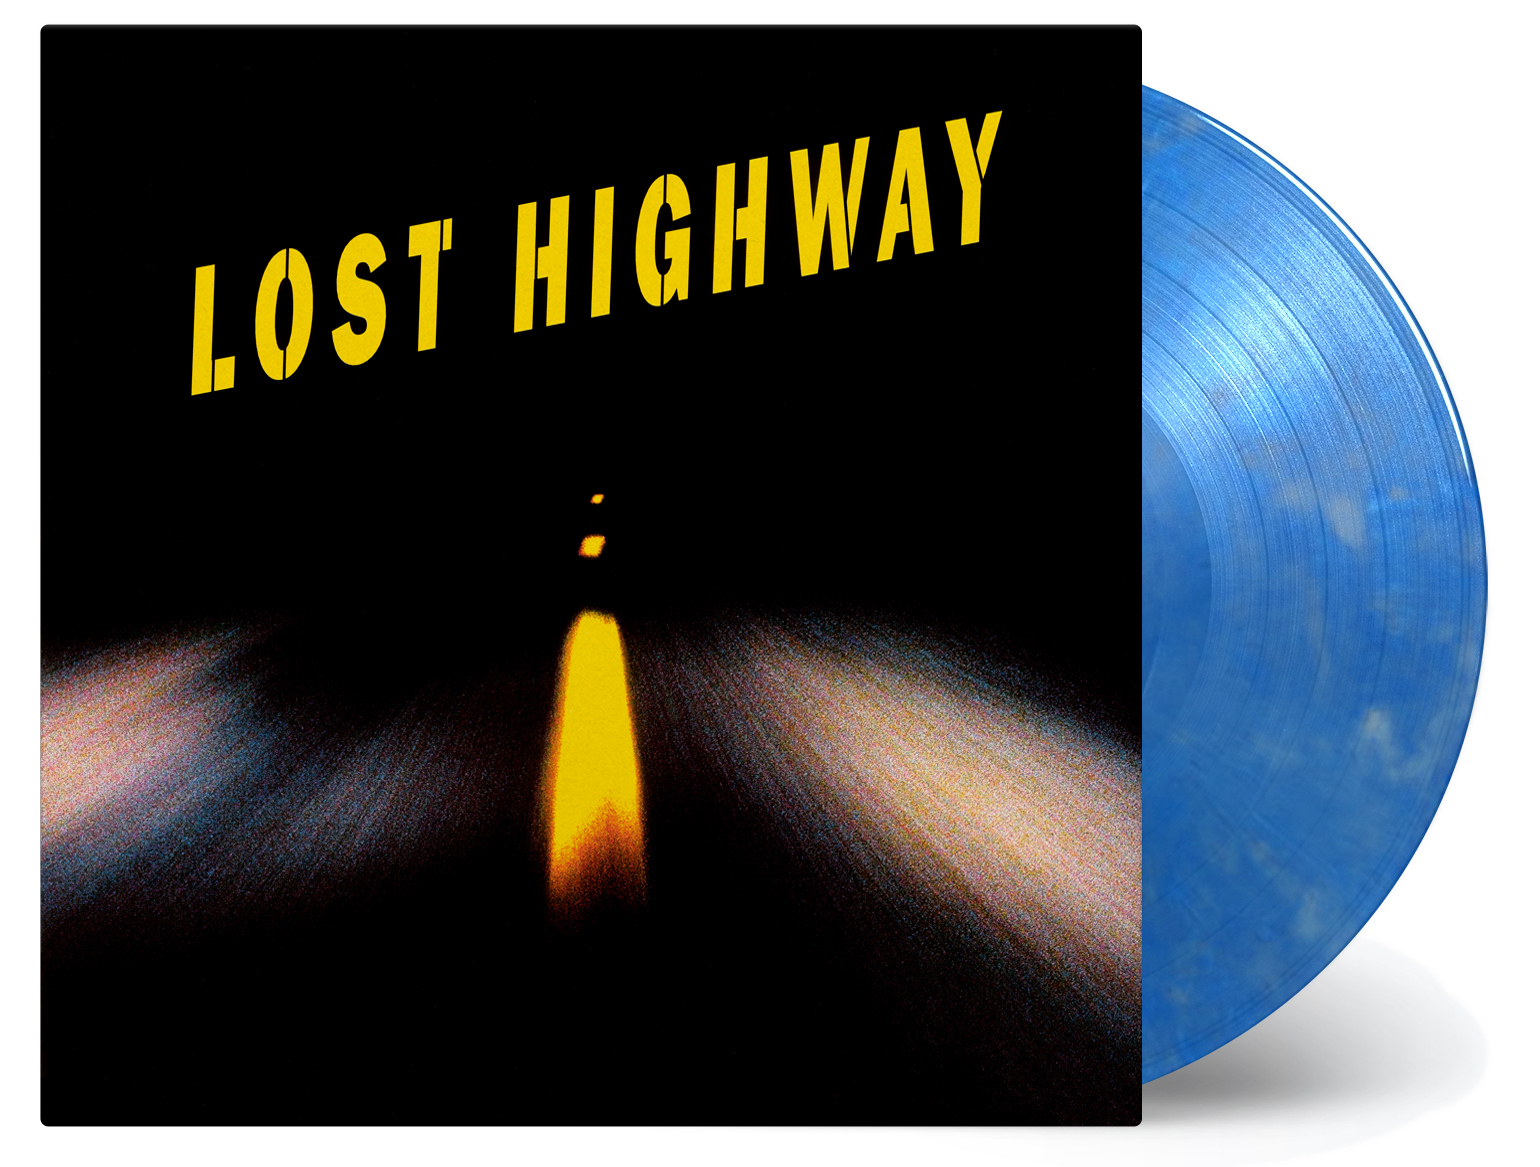 Lost Highway 1997 Original Soundtrack Light In The